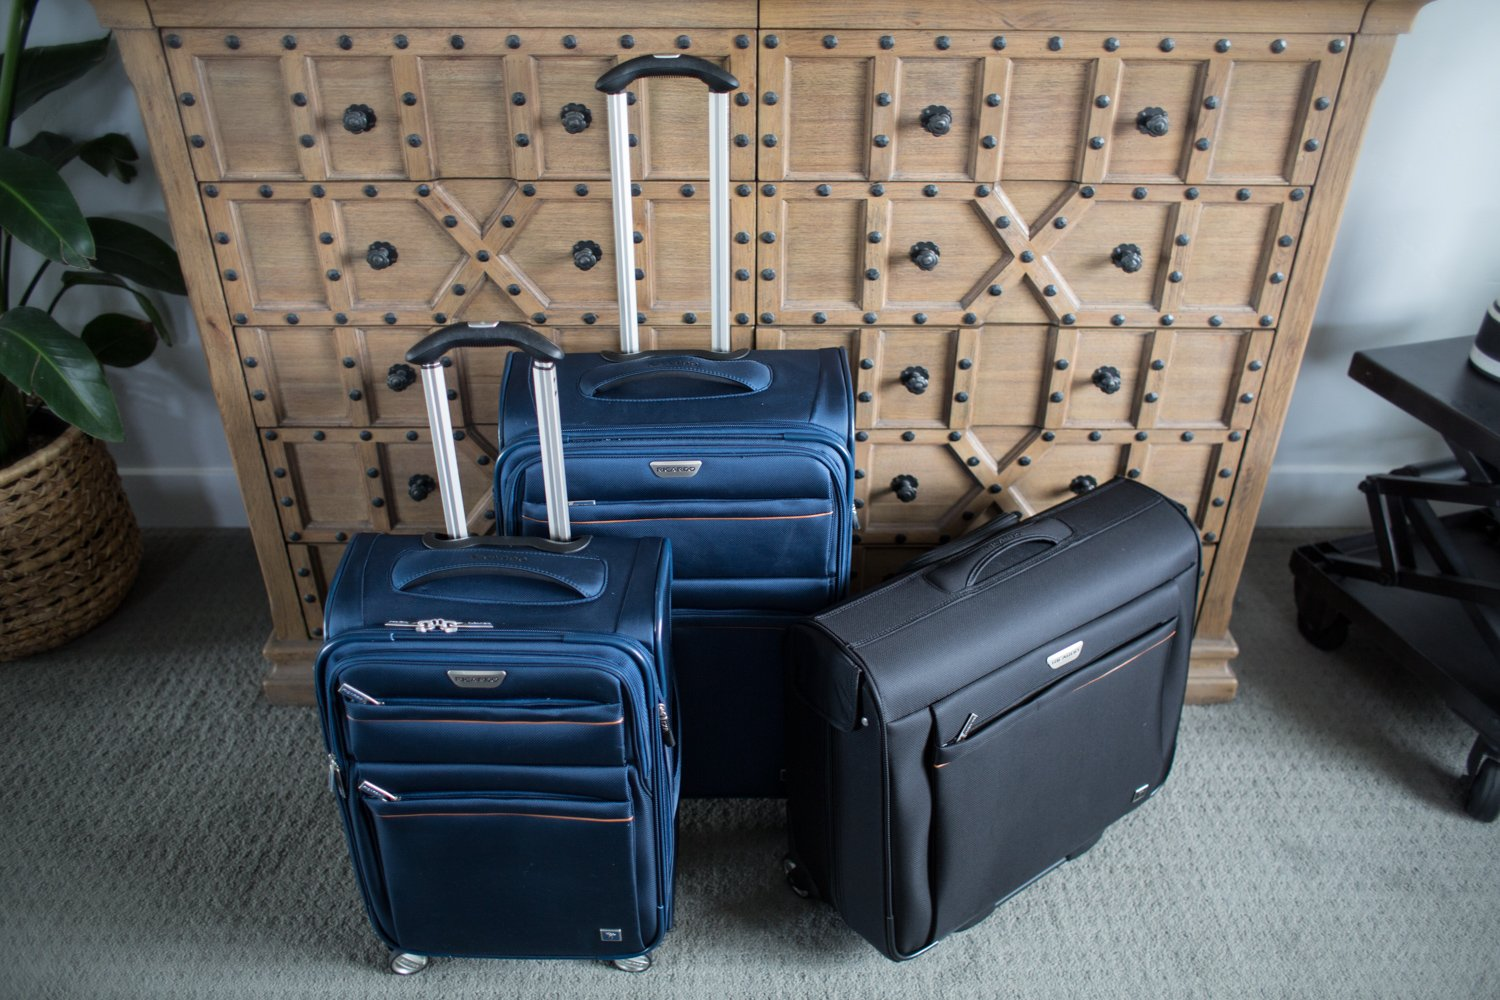 ricardo_beverly_hills_luggage_collection_review